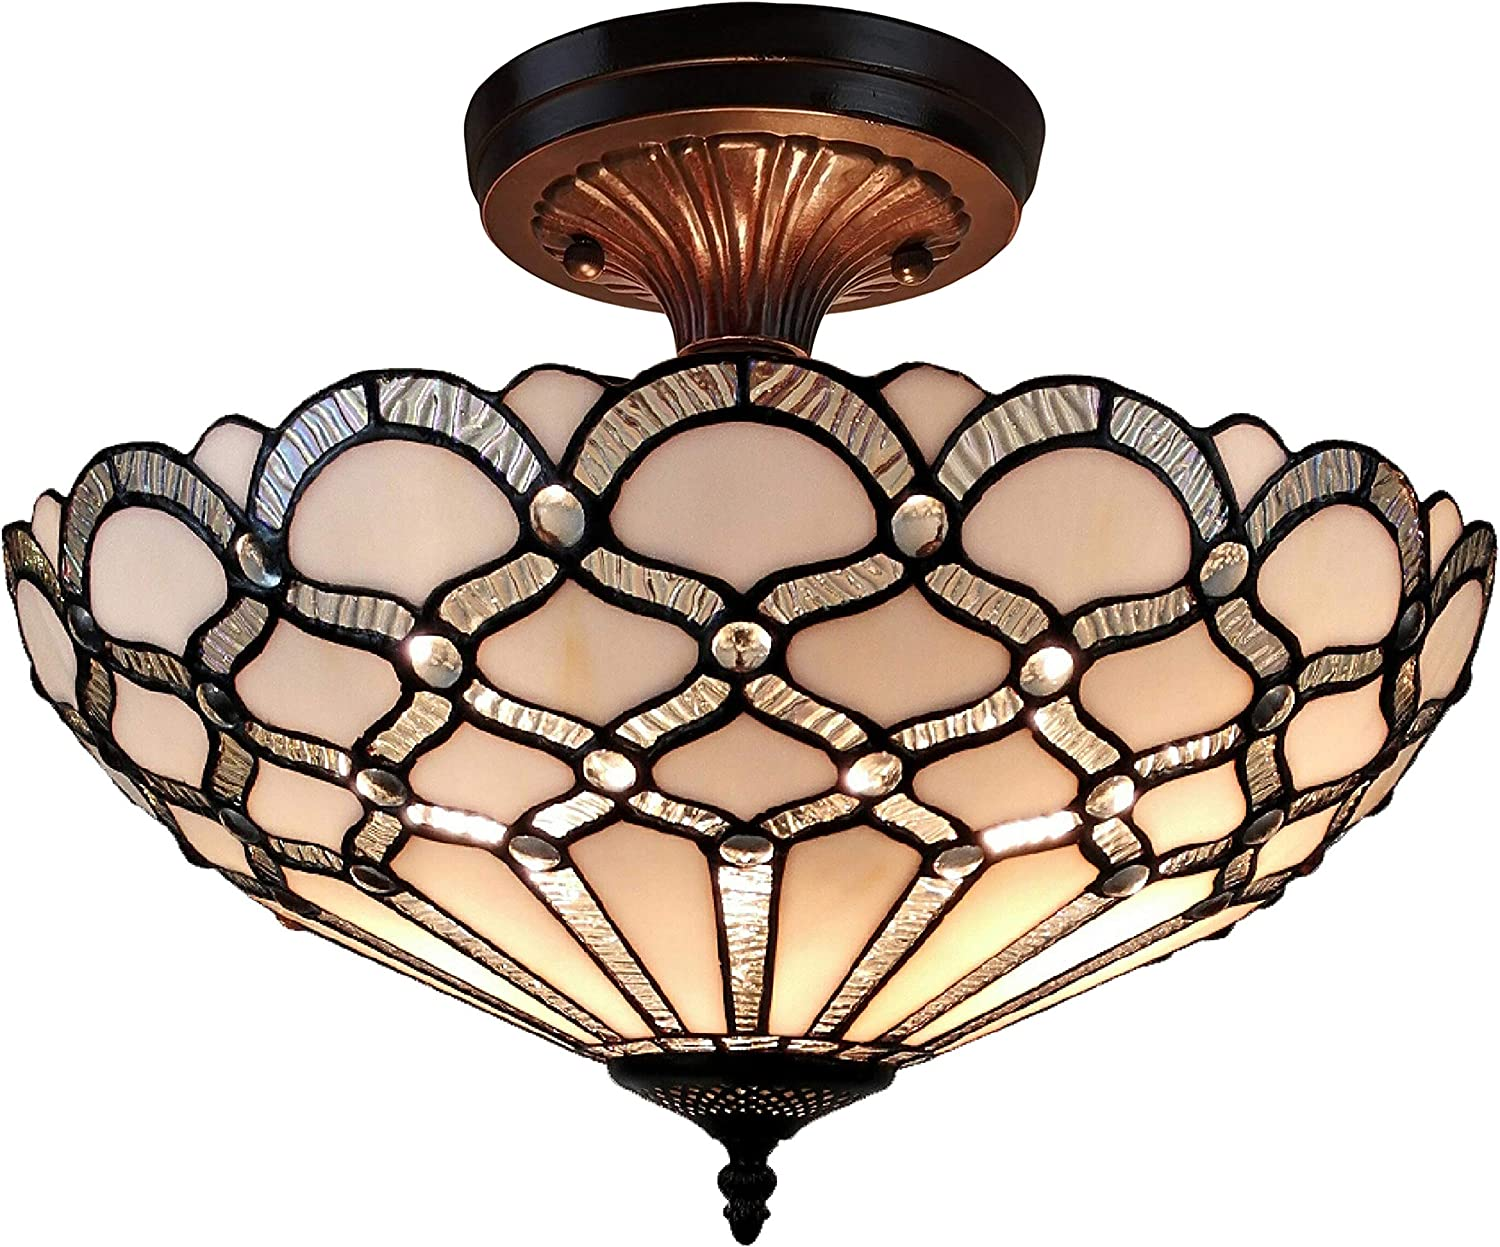 """Amora Lighting Tiffany Style Ceiling Fixture Lamp Jeweled 17"""" Wide Stained Glass White Antique Vintage Light Decor Living Room Bedroom Kitchen Hallway Gift AM108CL17B"""